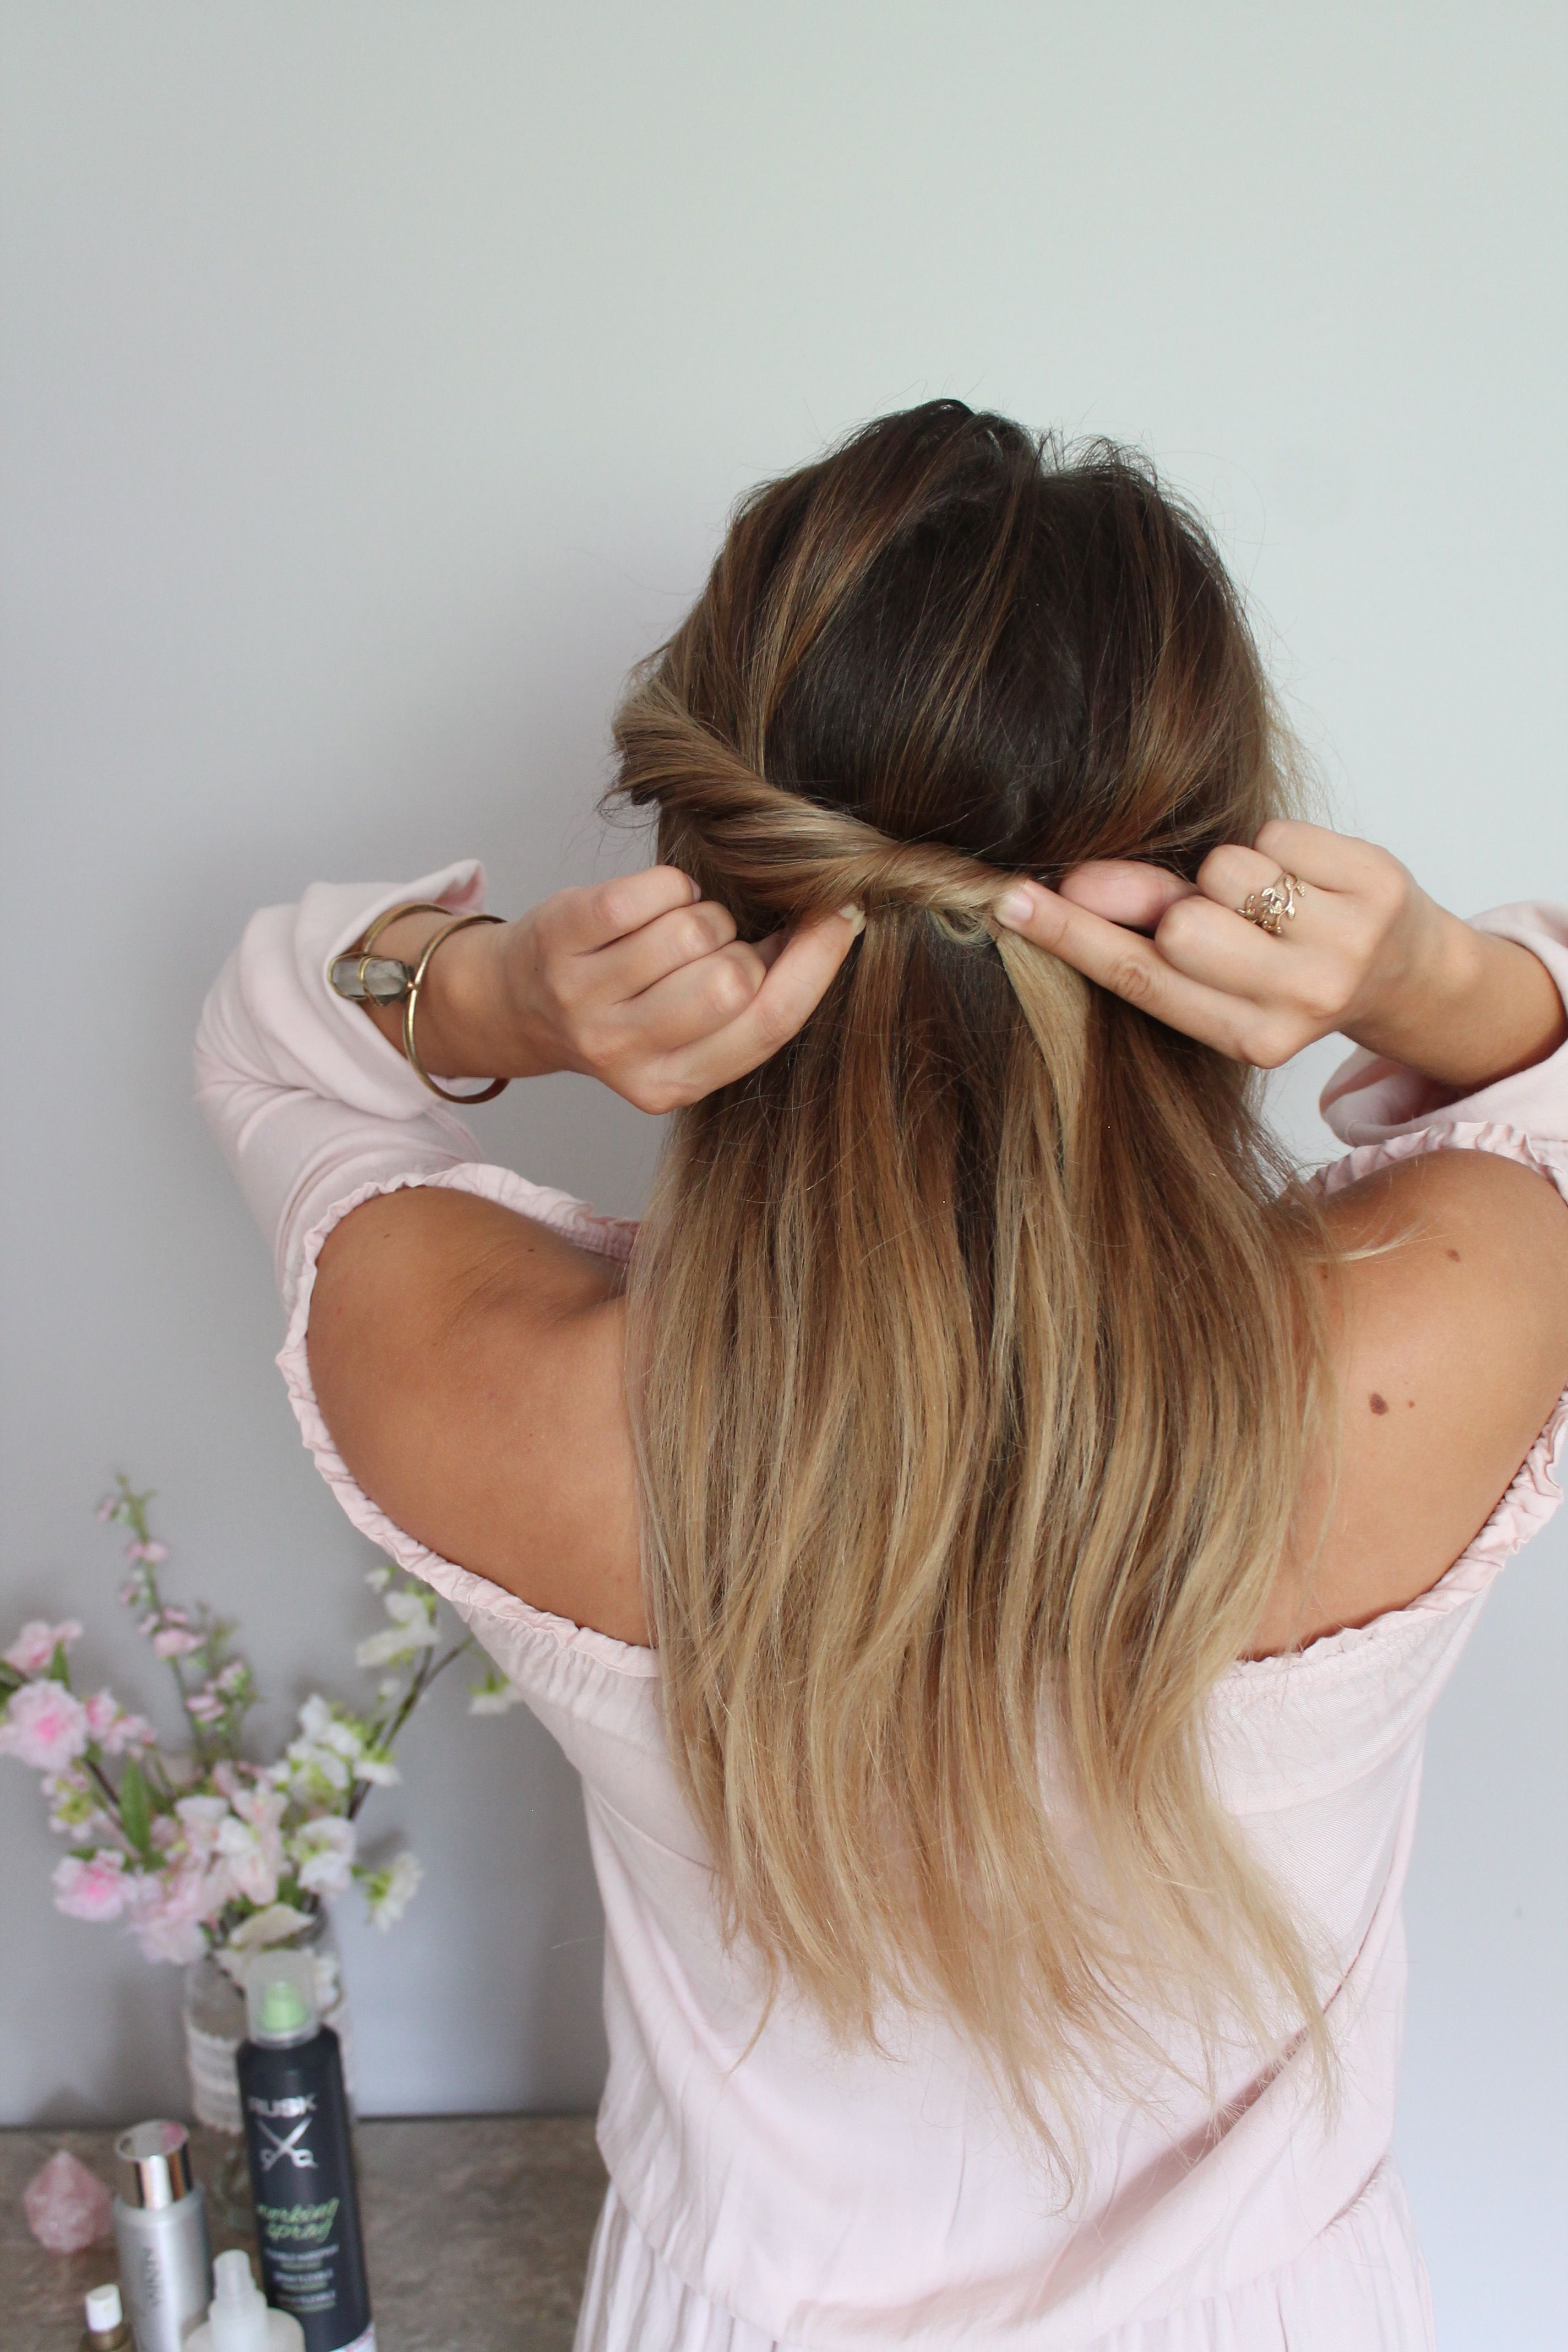 DIY Easy Hairstyles That Won't Damage Your Hair! – Muah by Alexandria